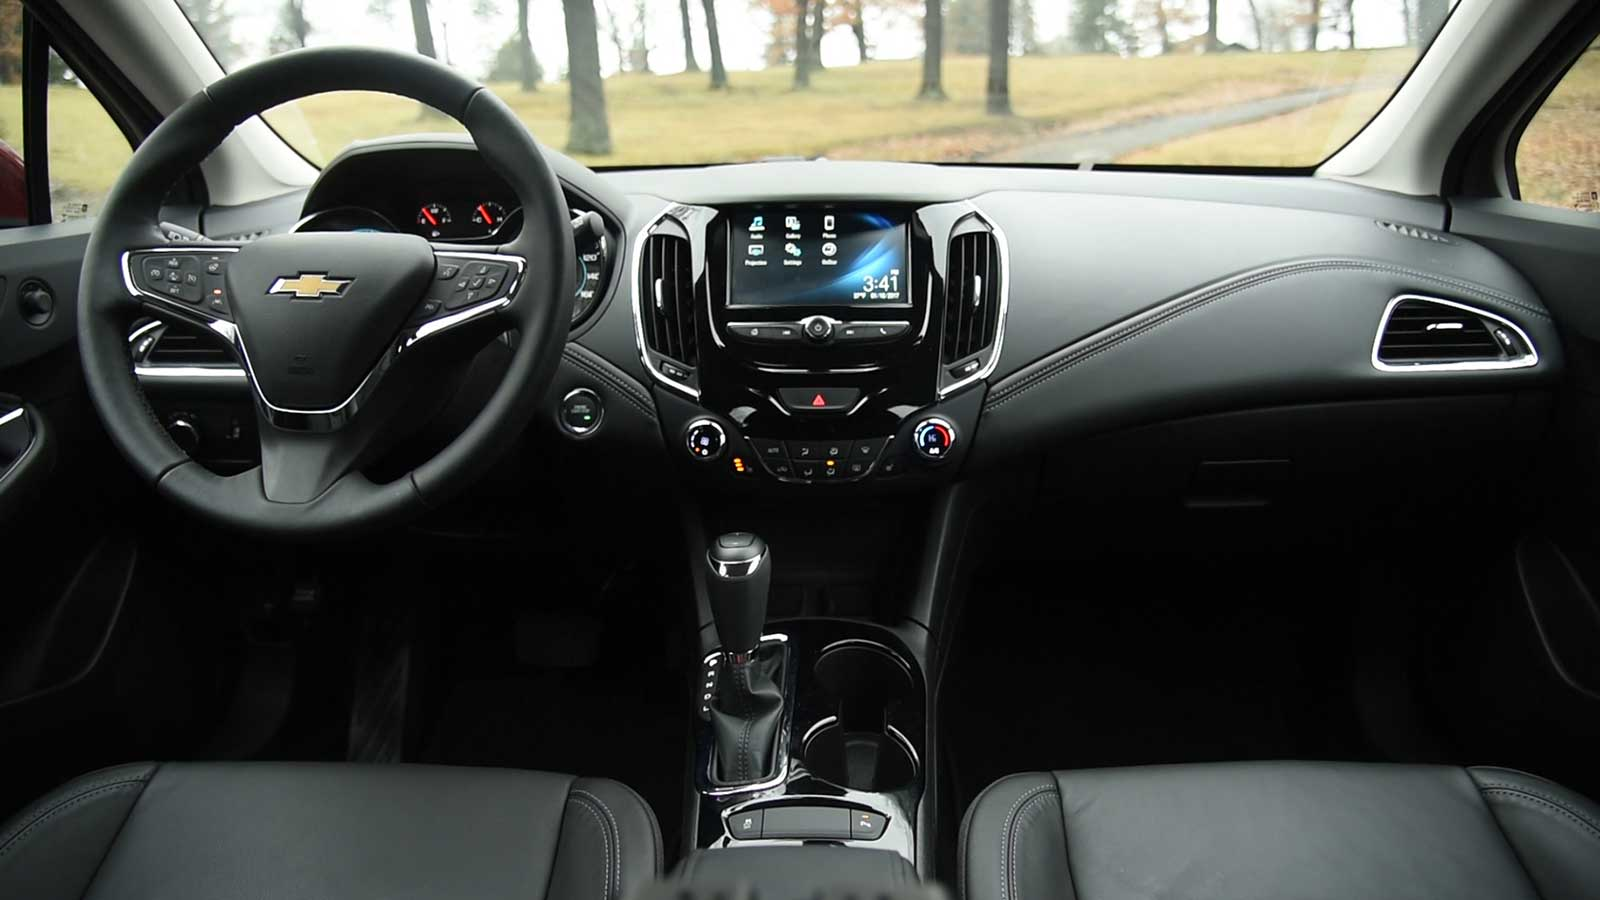 2017 Chevrolet Cruze Hatchback Interior 09